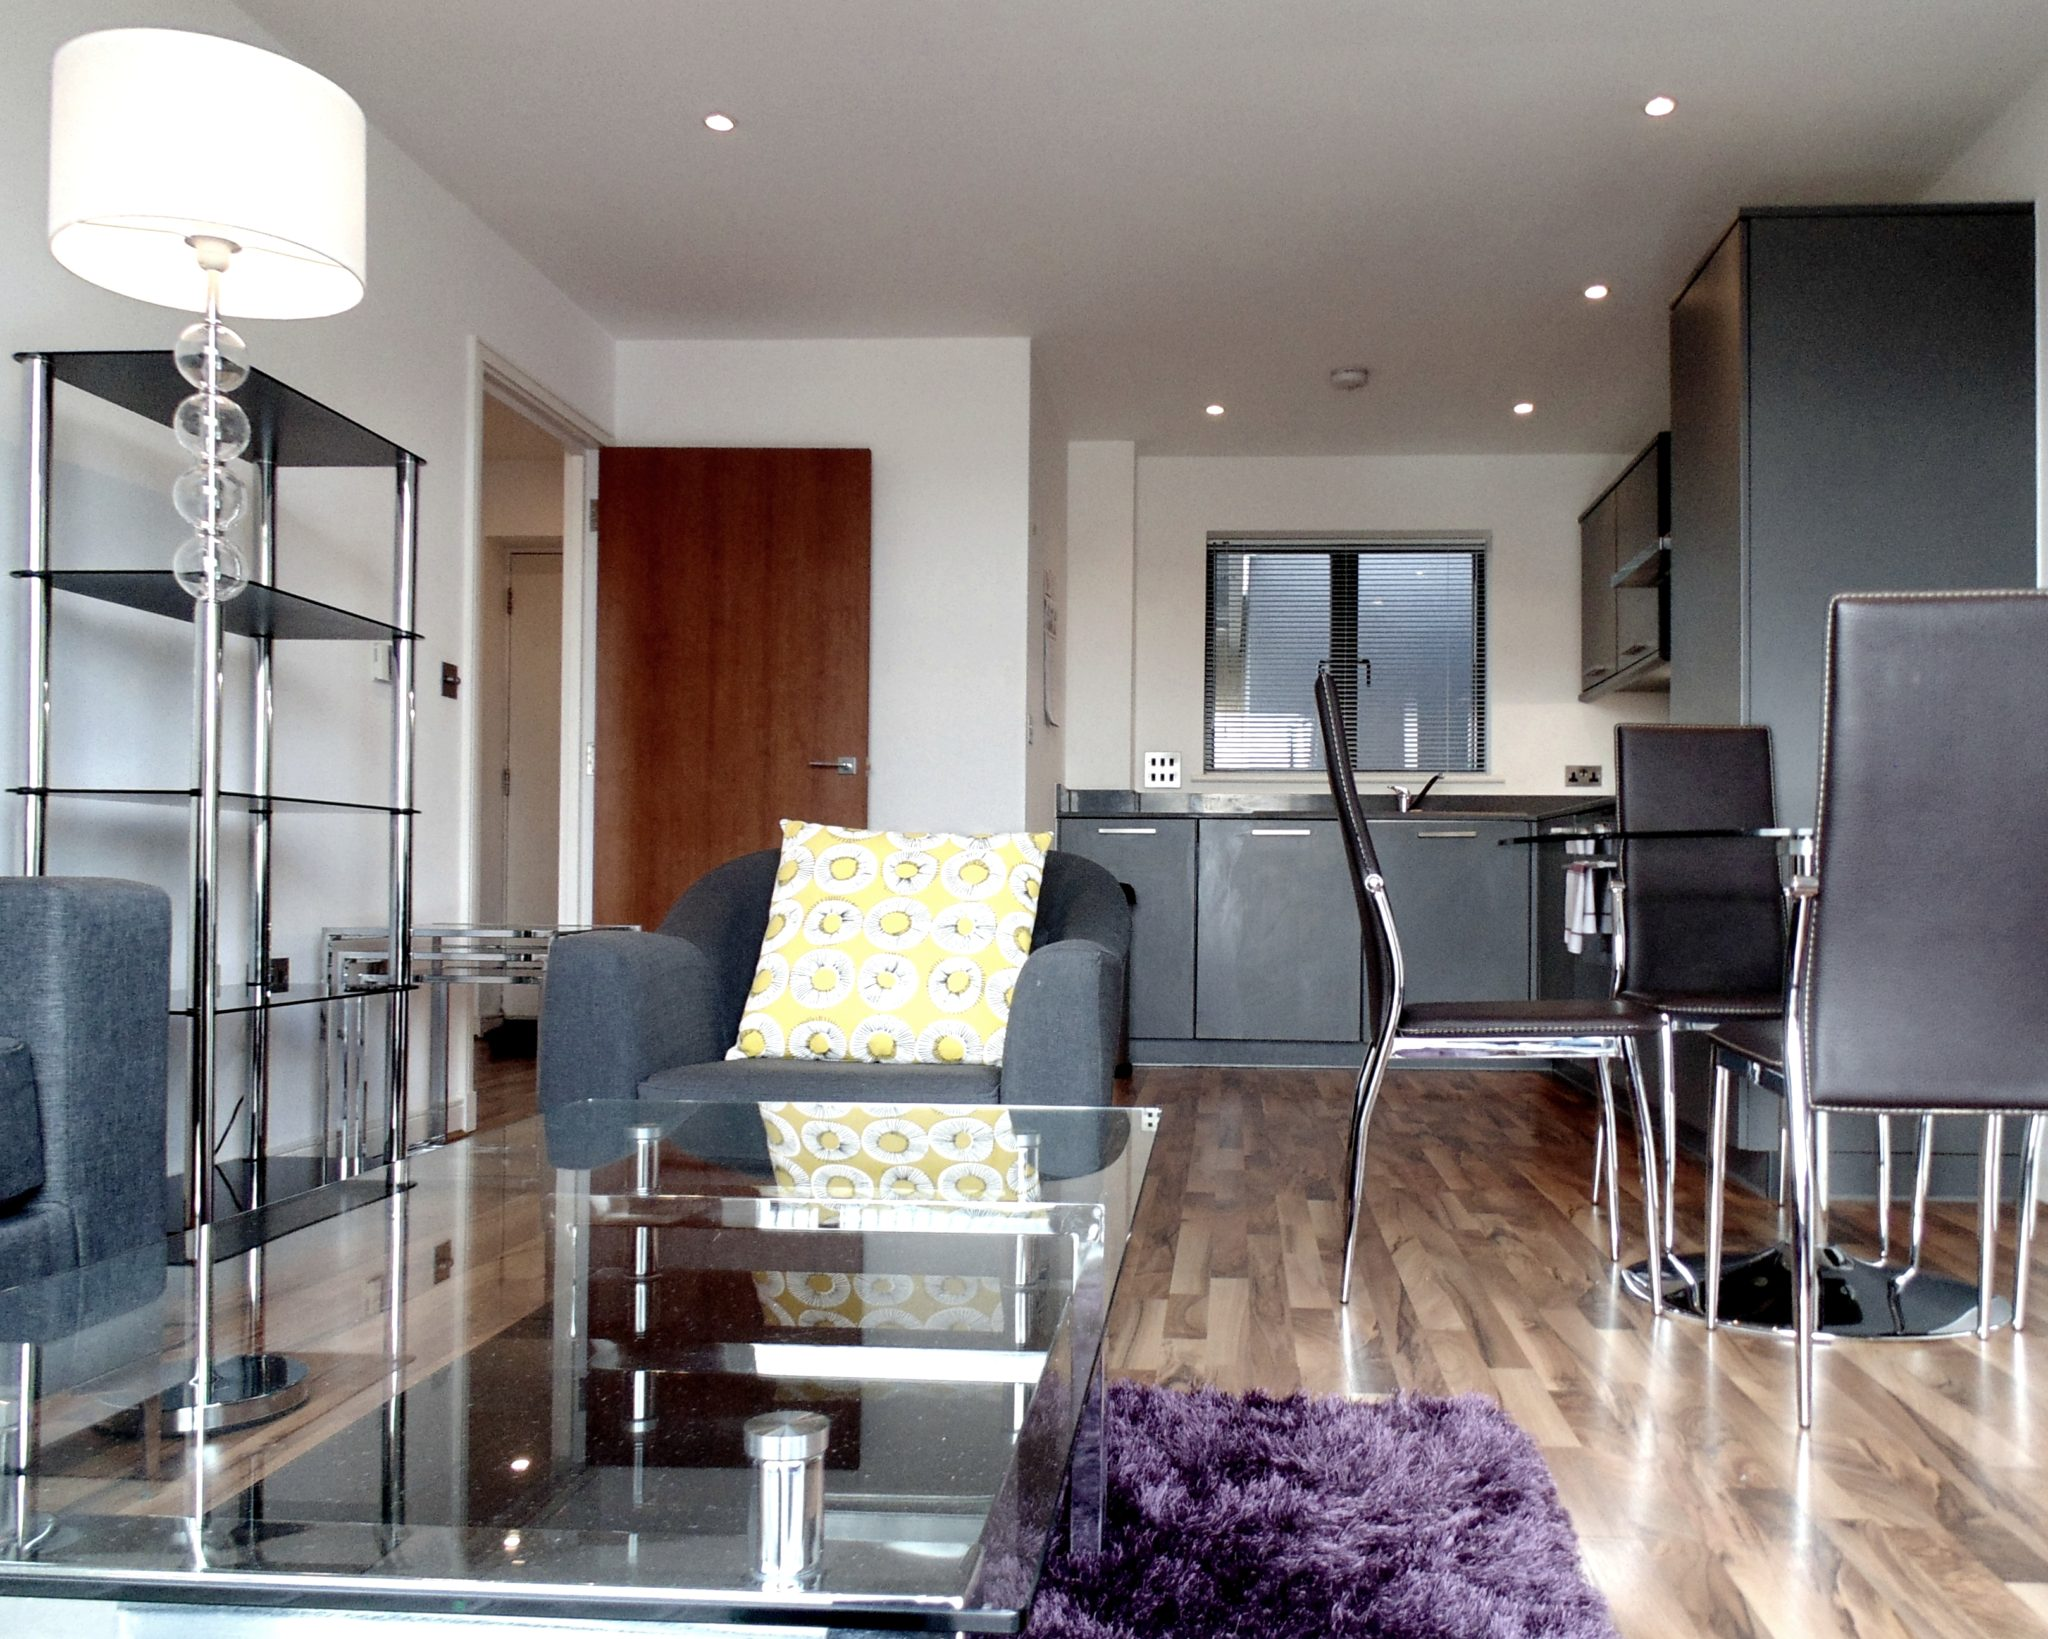 King's-Cross-Serviced-Apartments-London---Corporate-Short-Let-Accommodation-London---Luxury-Accommodation-Euston-London-|-Urban-Stay